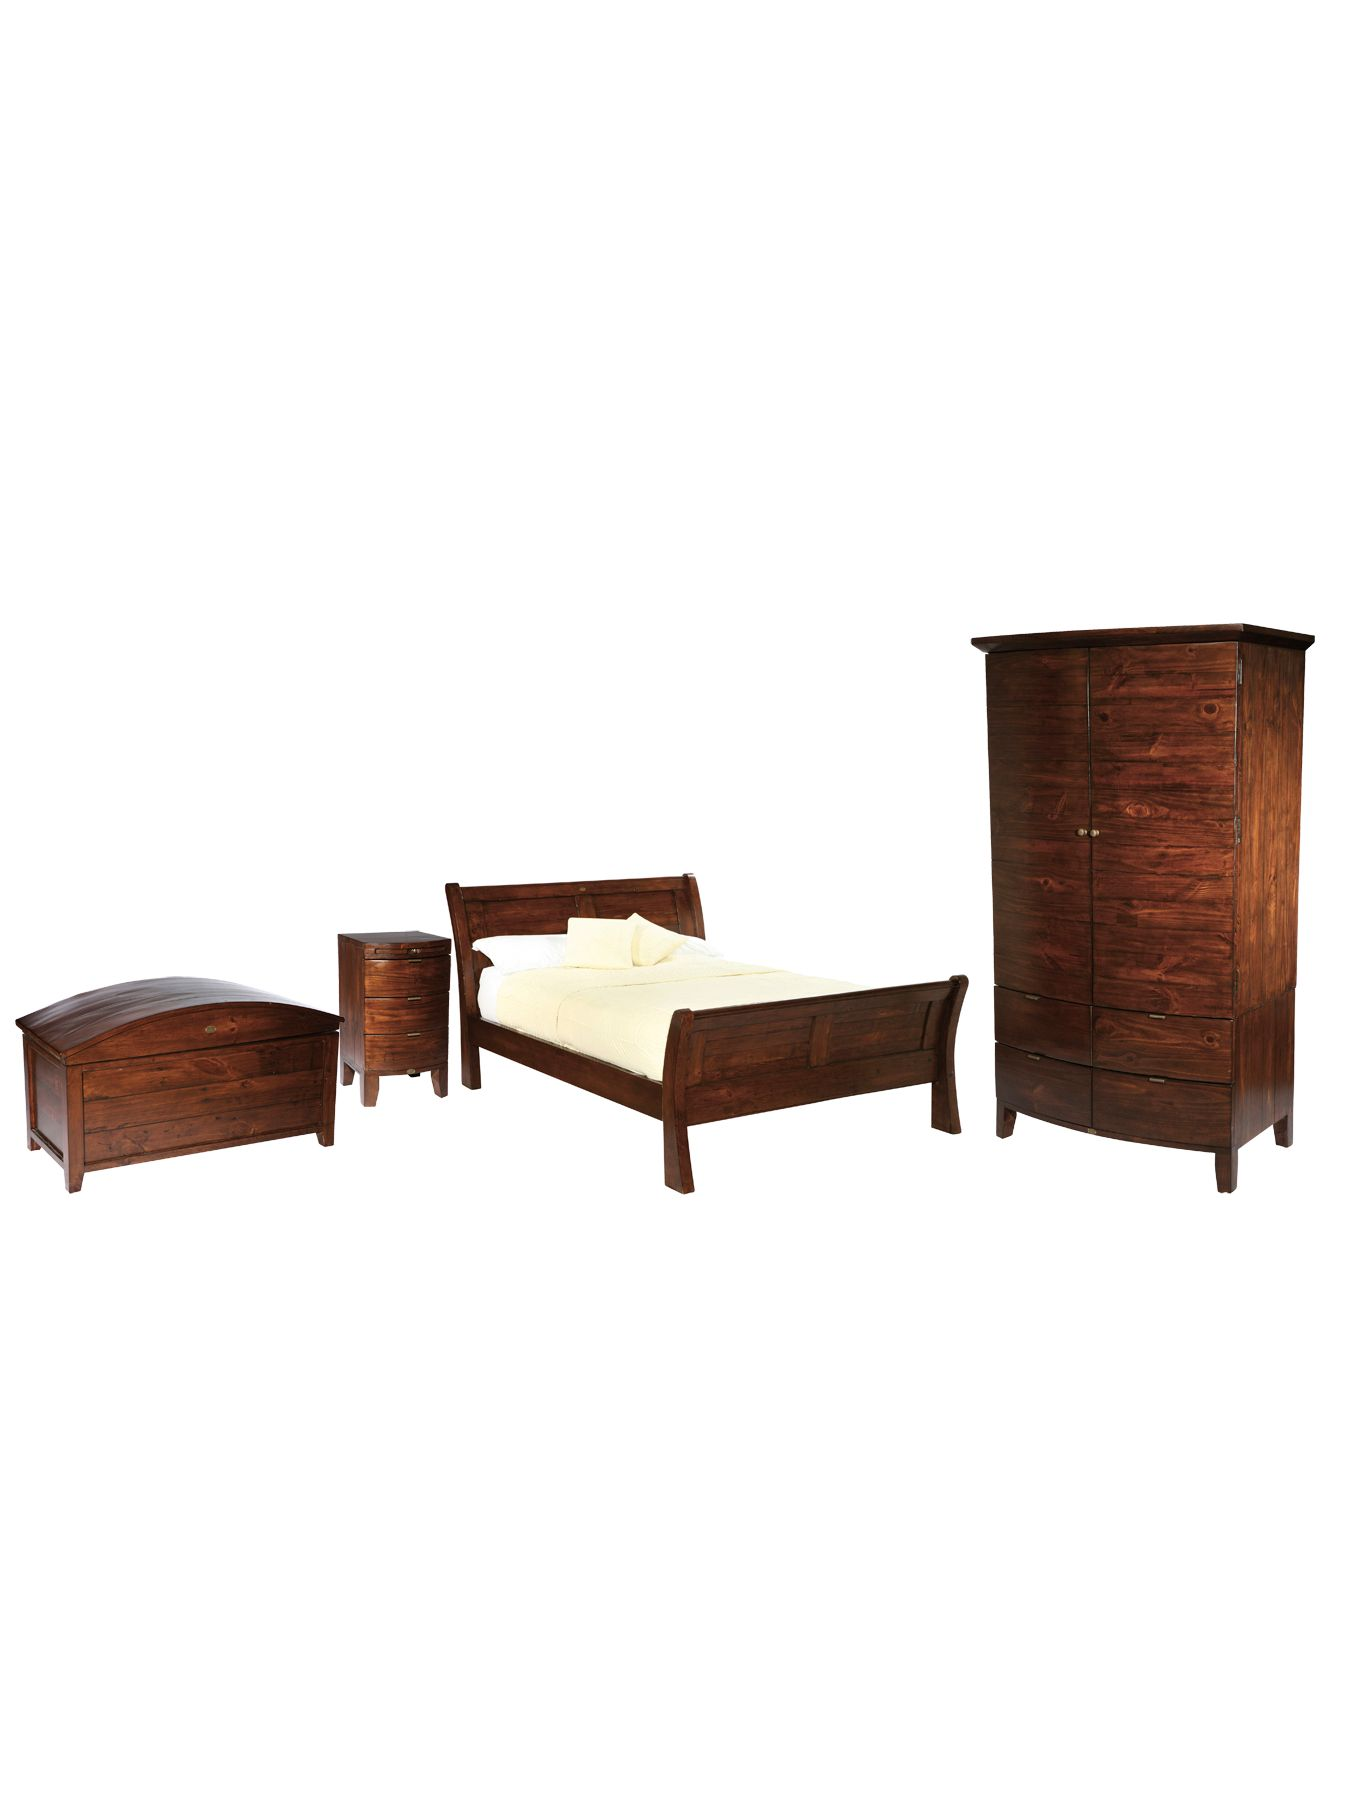 Lyon Bedroom Furniture Range